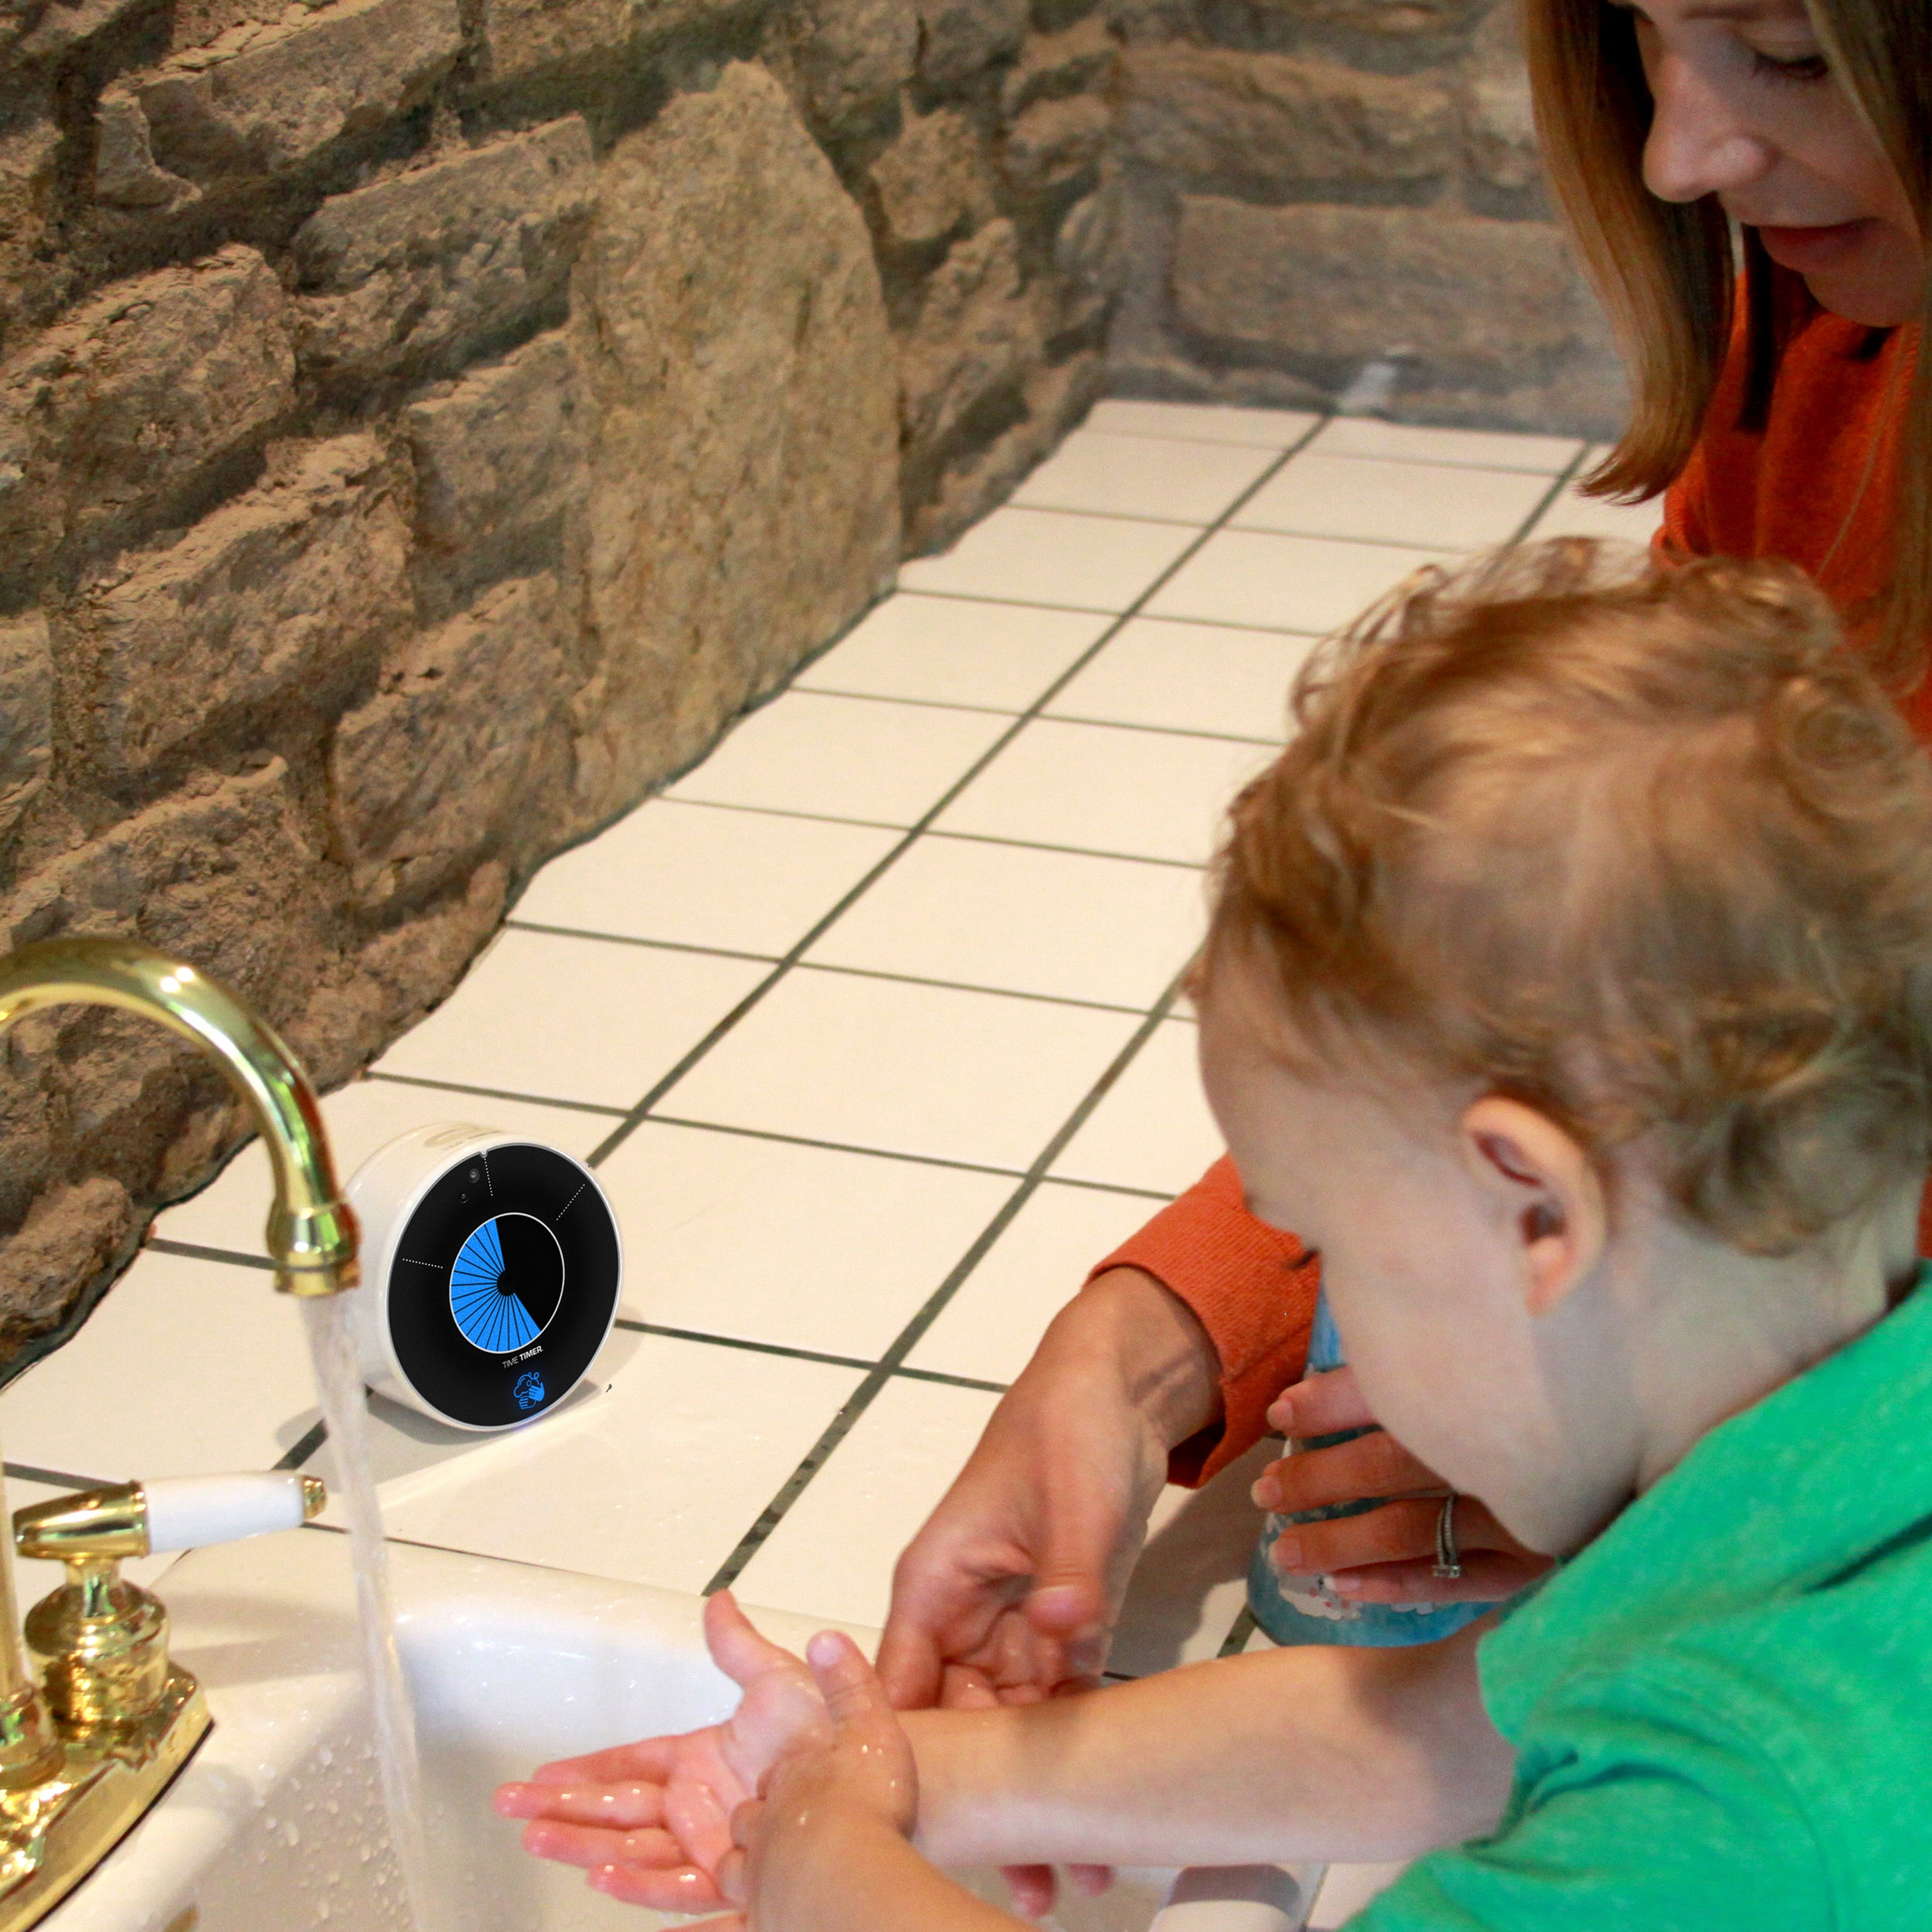 A mother or teacher helps a young toddler wash his hands at the sink by utilizing the Time Timer WASH visual timer for handwashing.